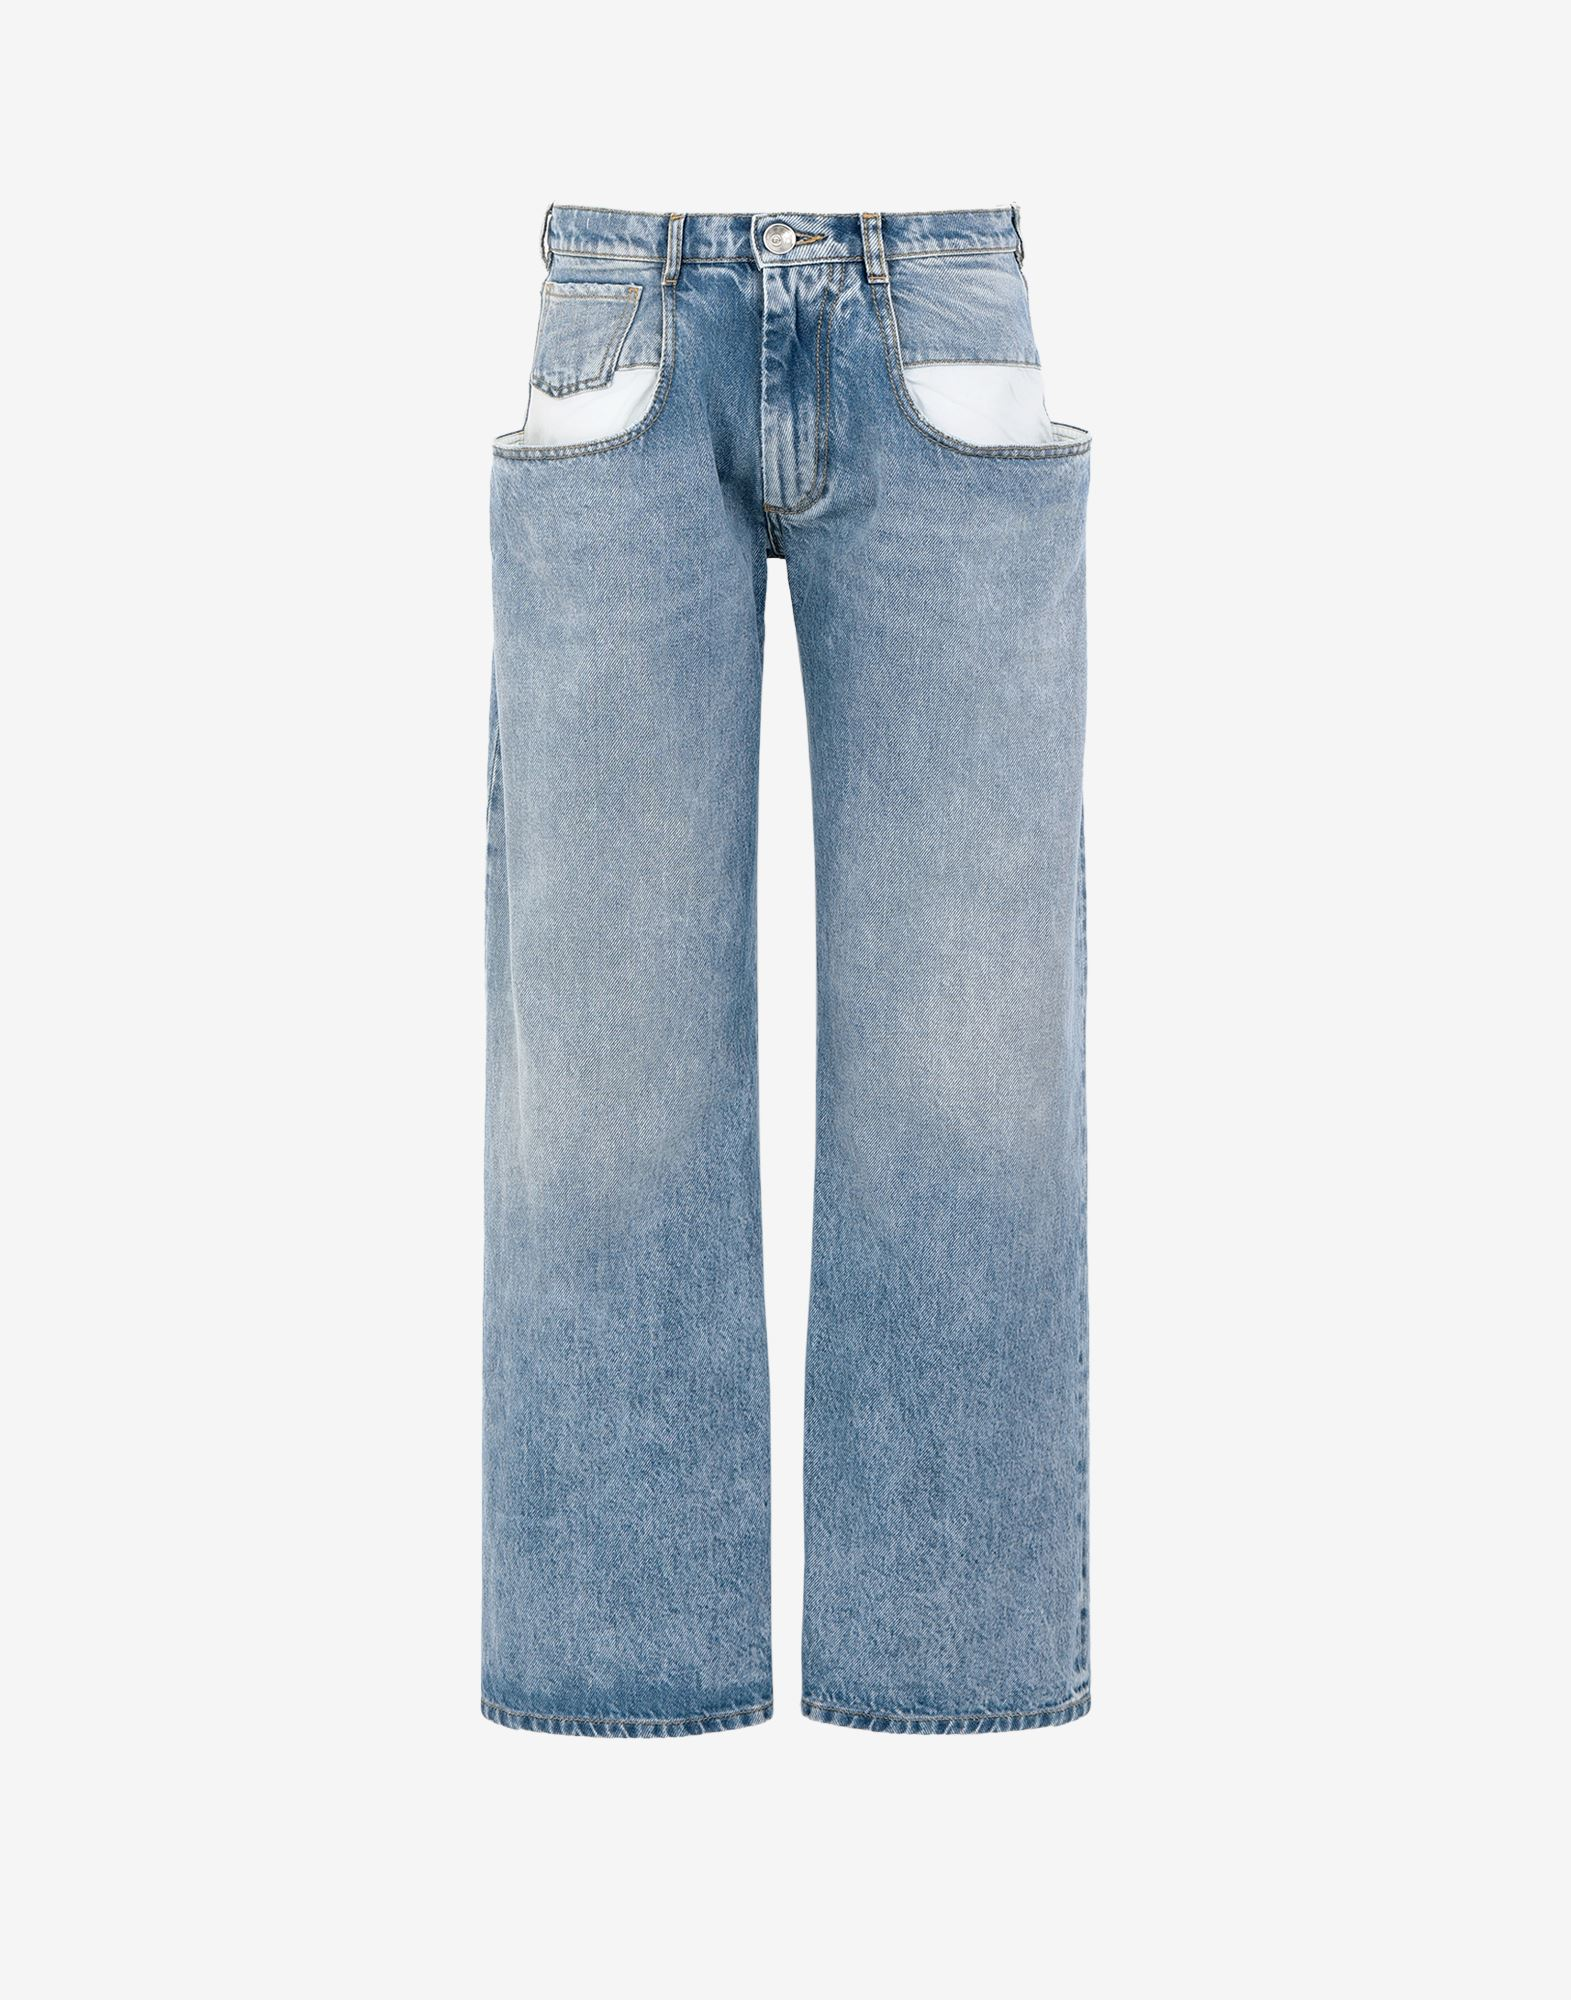 MAISON MARGIELA Straight jeans with contrasted pockets Jeans Woman f